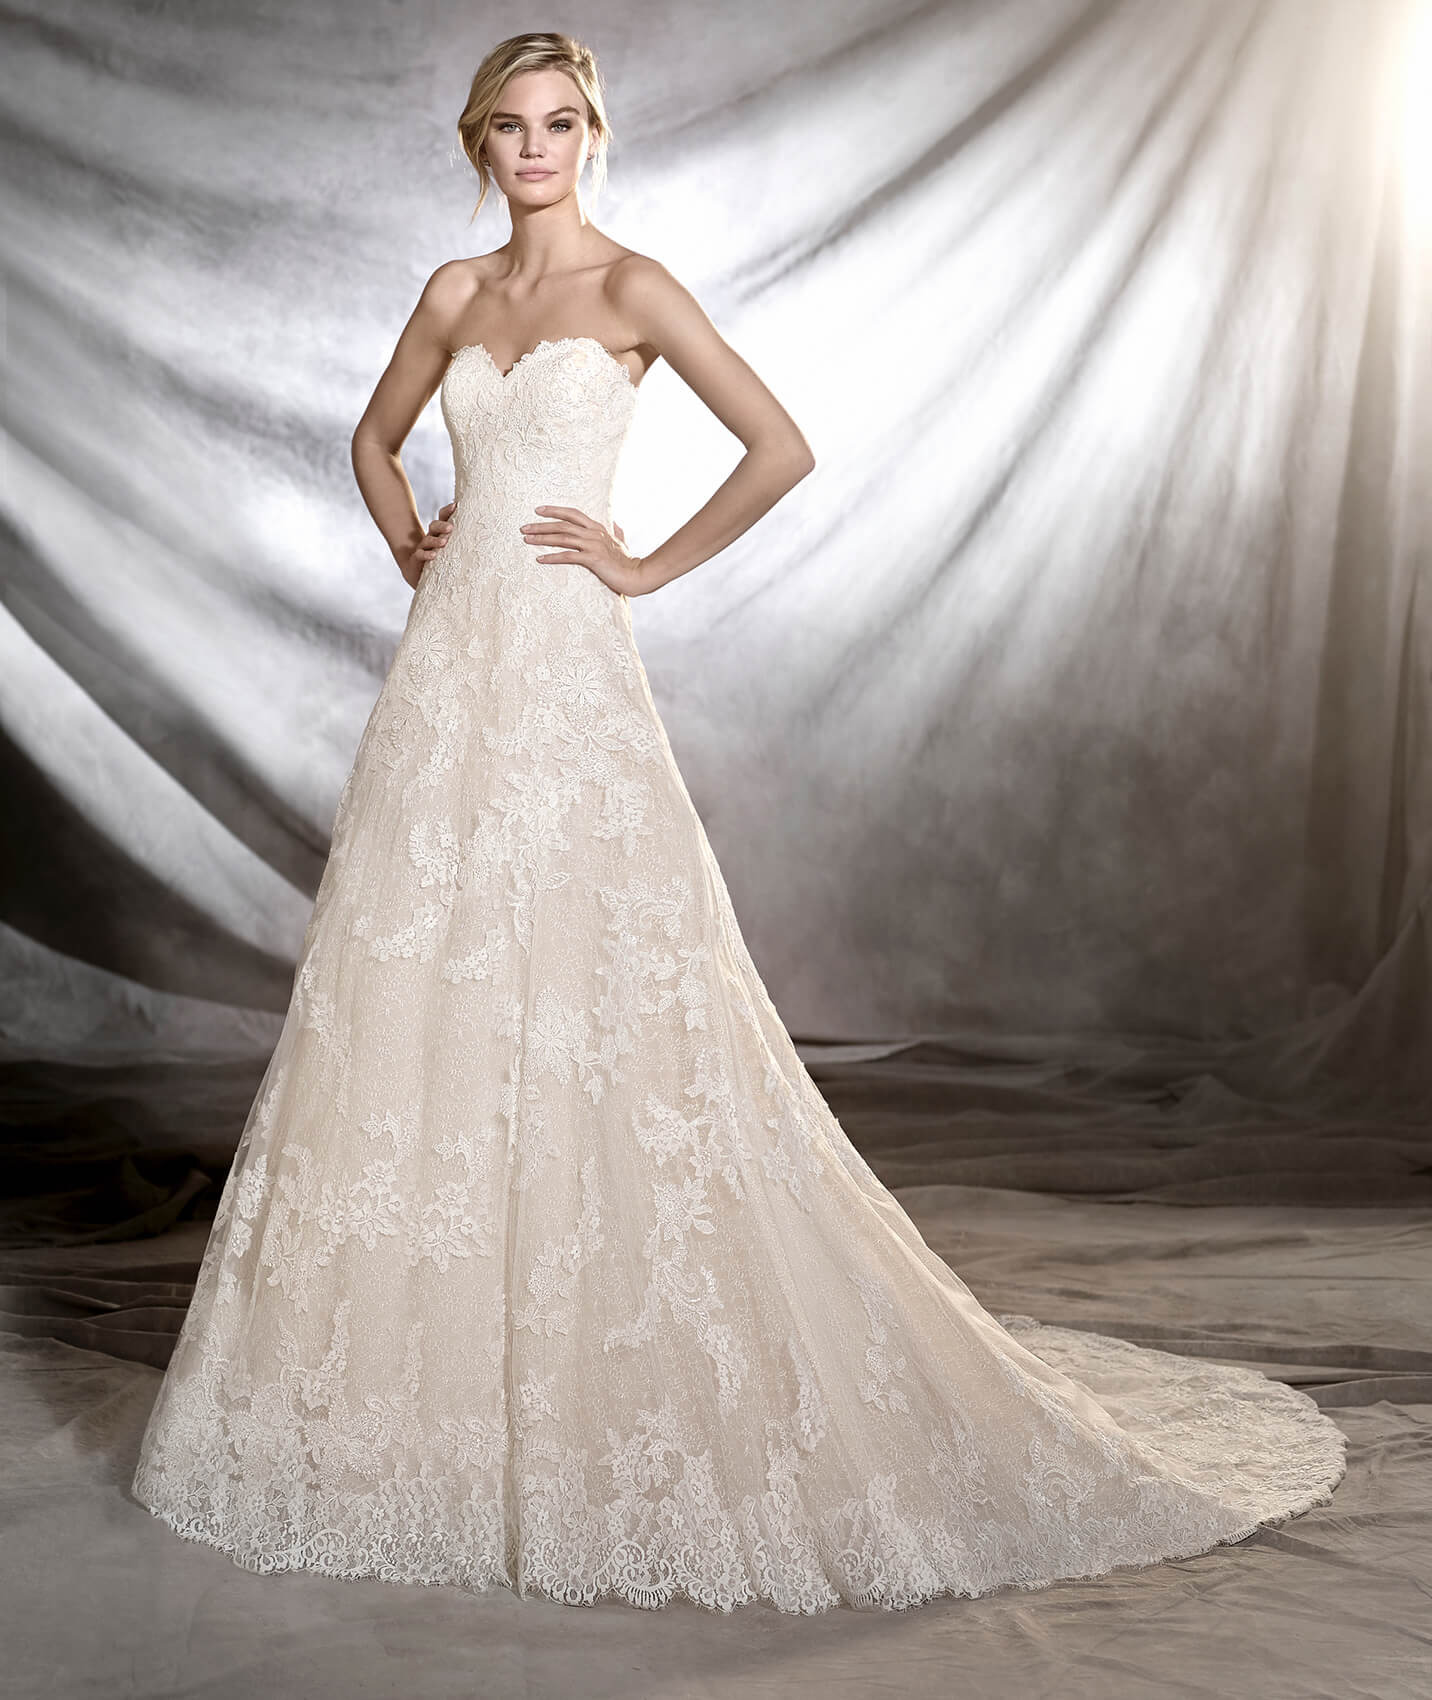 Onia wedding dress